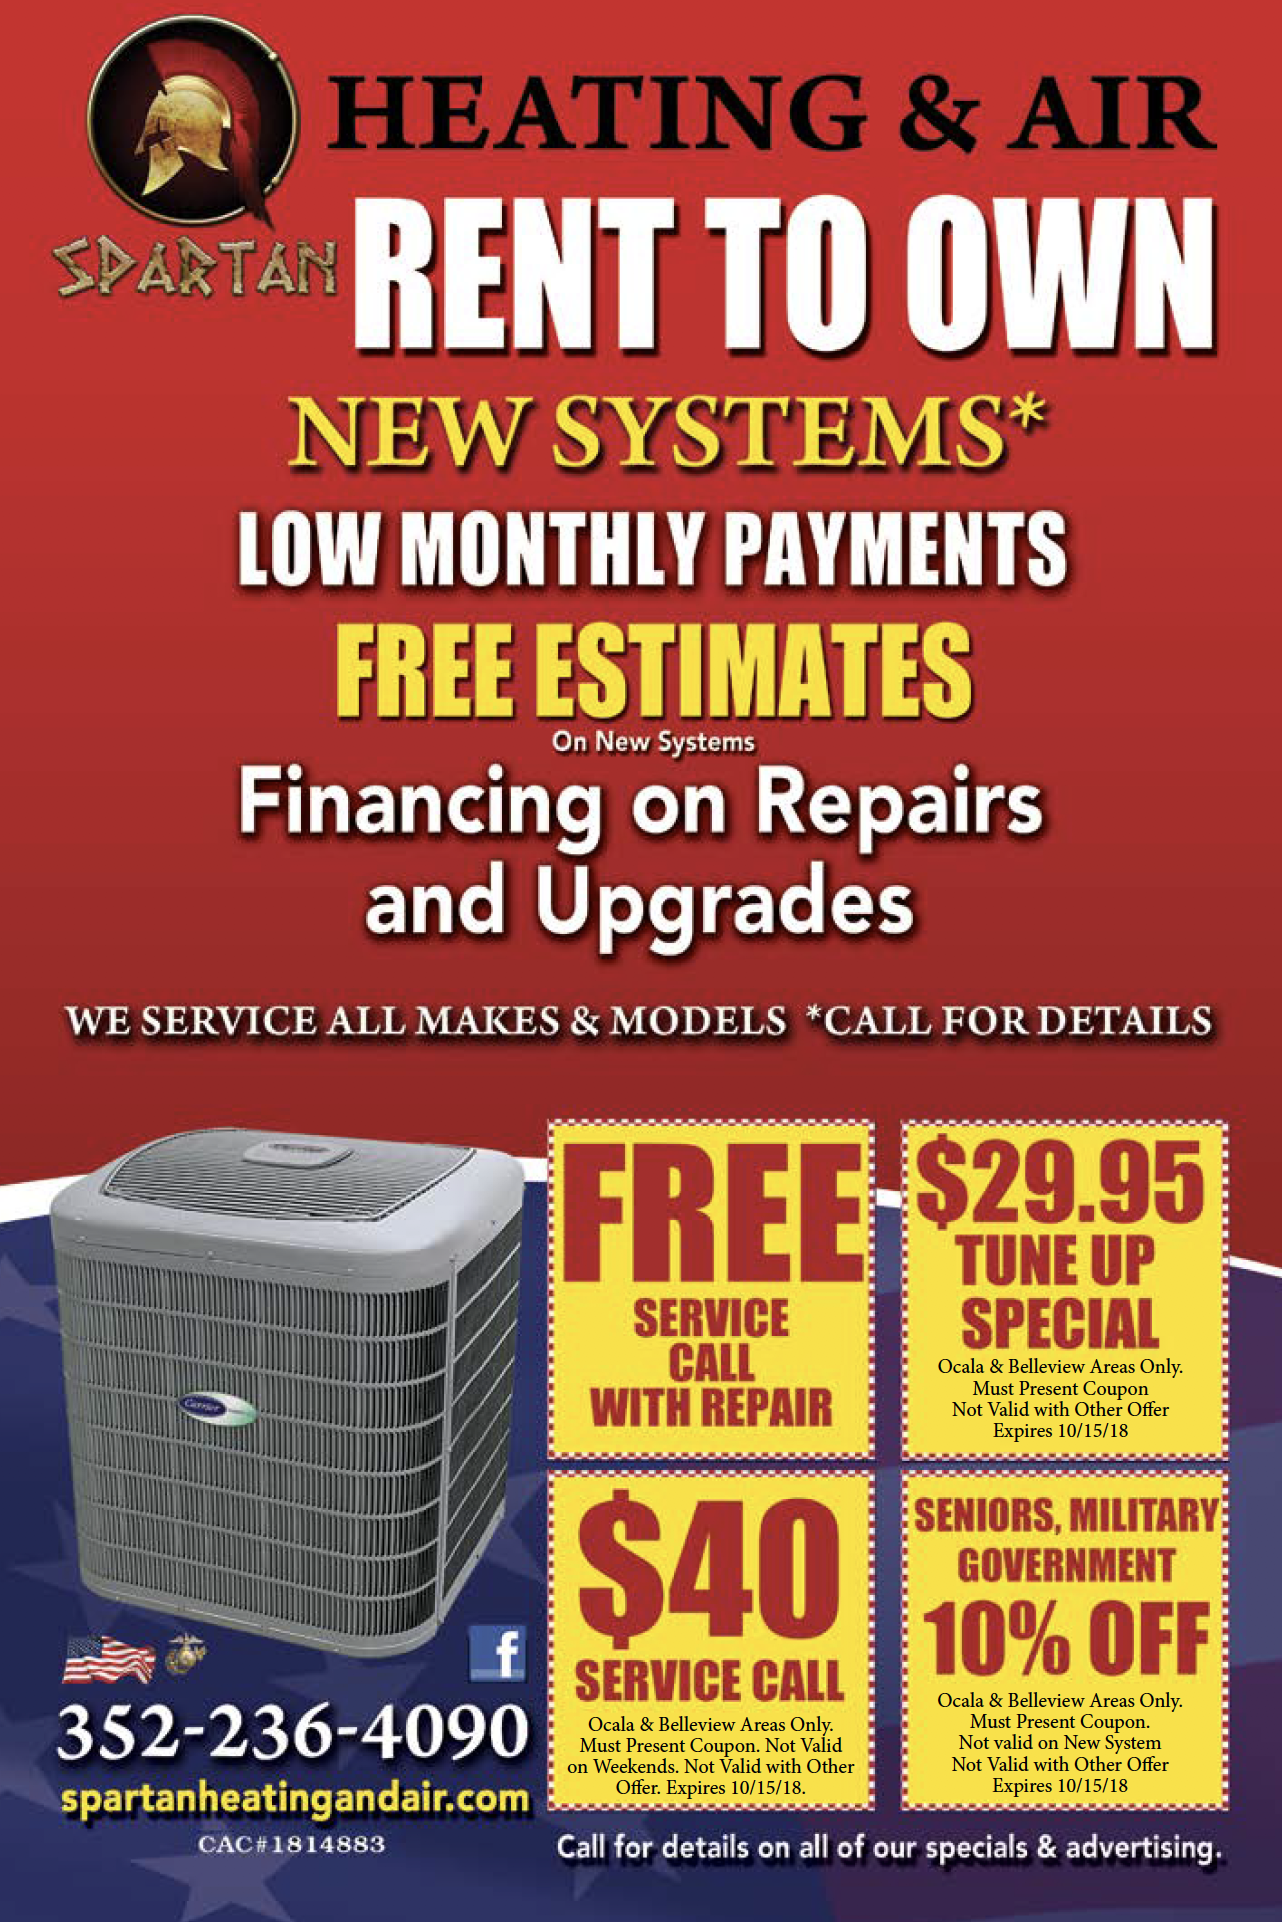 Rent to own new systems... Free estimates Air heating